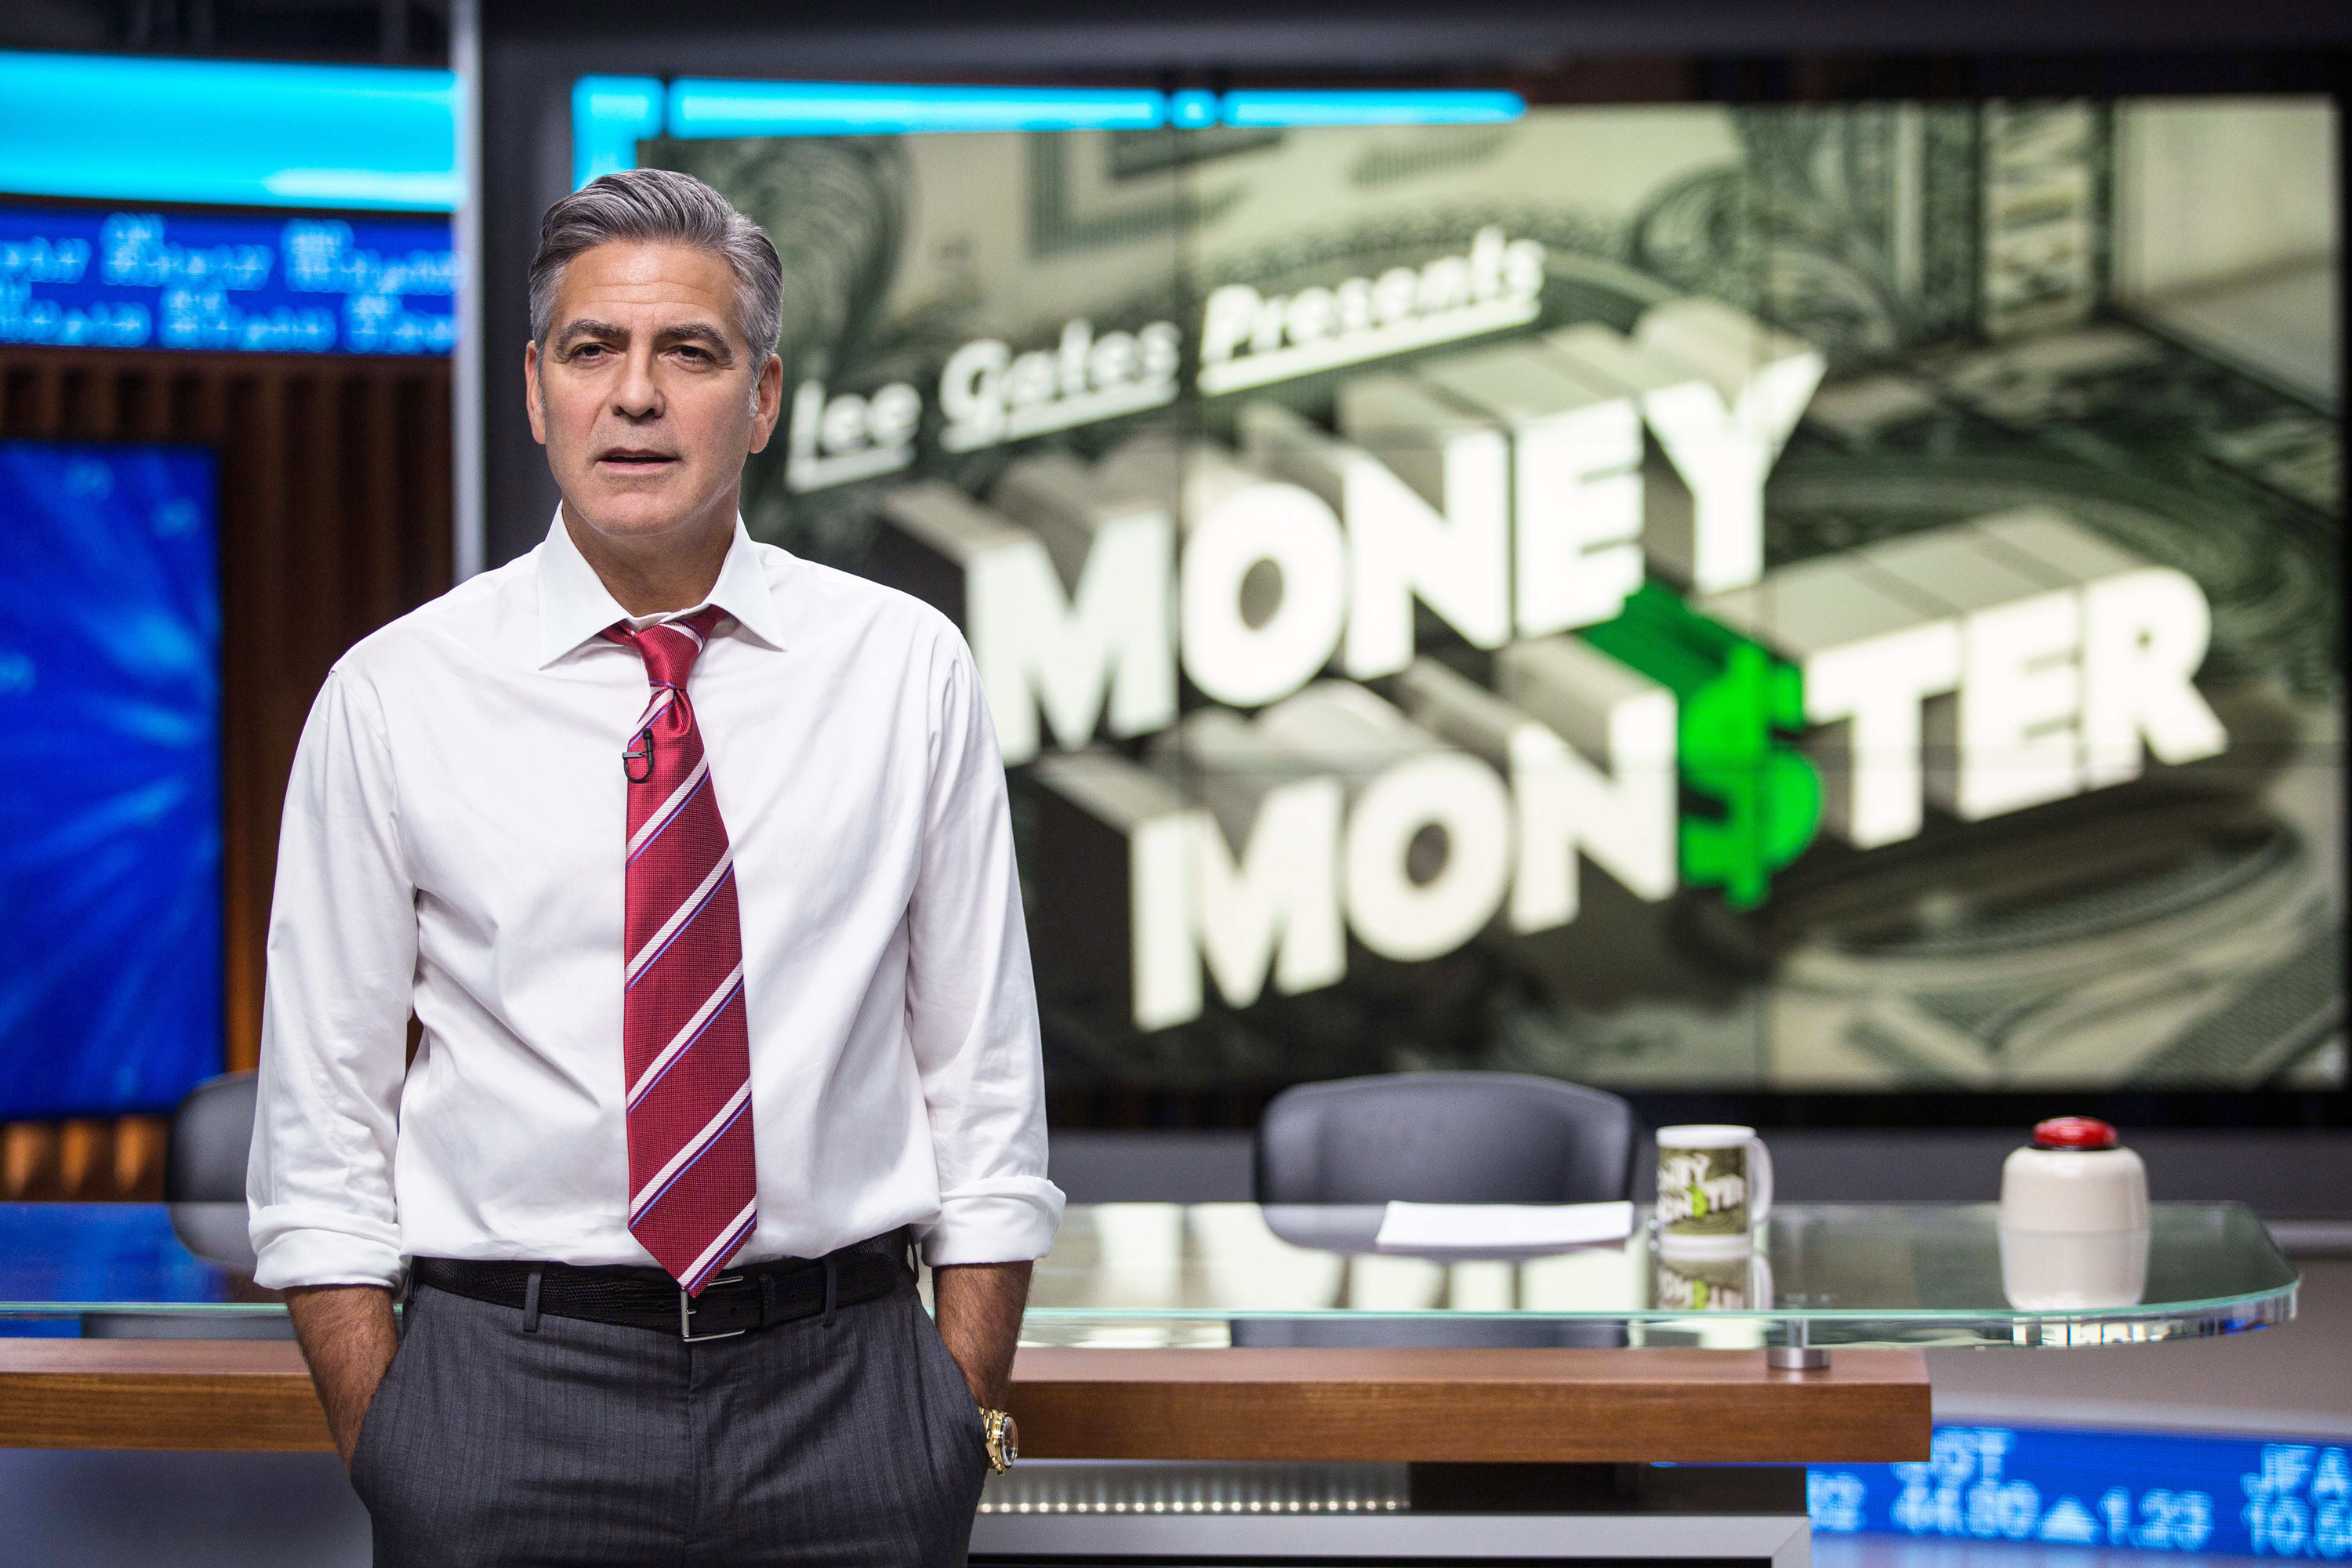 George Clooney stands in front of his news desk